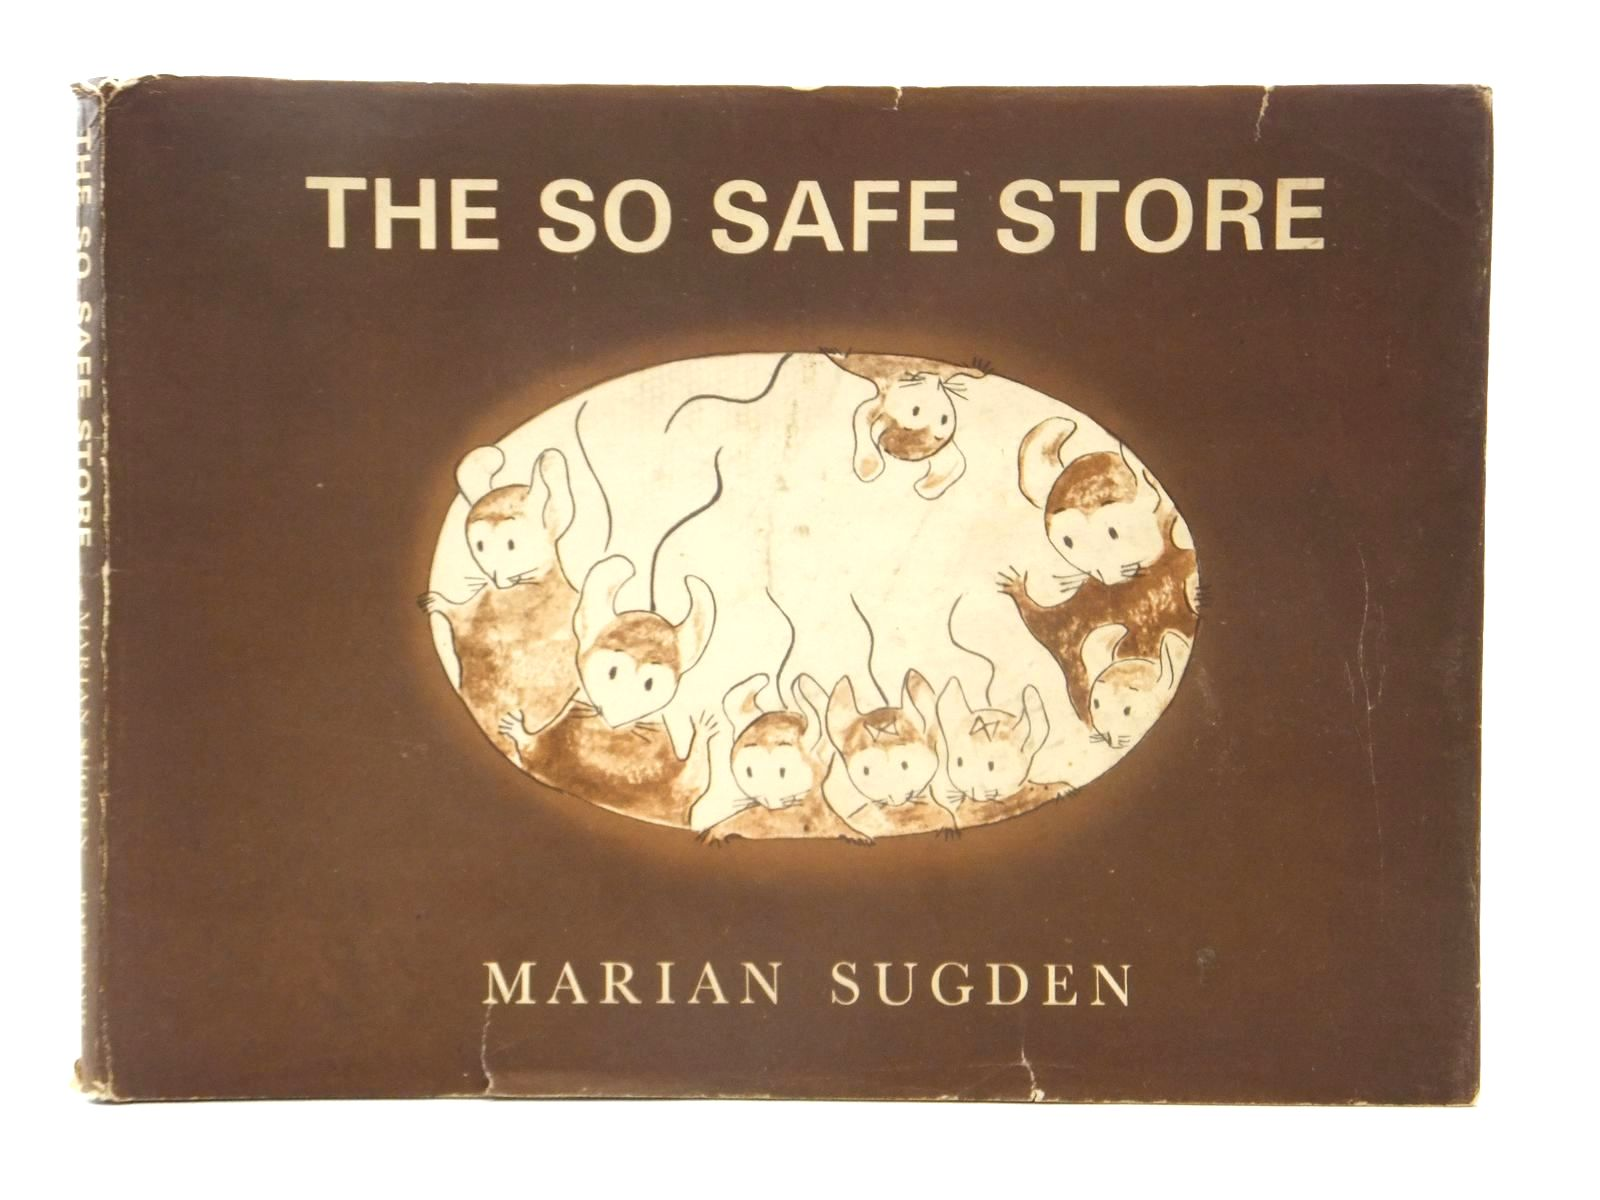 Photo of THE SO SAFE STORE written by Sugden, Marian illustrated by Sugden, Marian published by Rupert Hart-Davis (STOCK CODE: 2124009)  for sale by Stella & Rose's Books